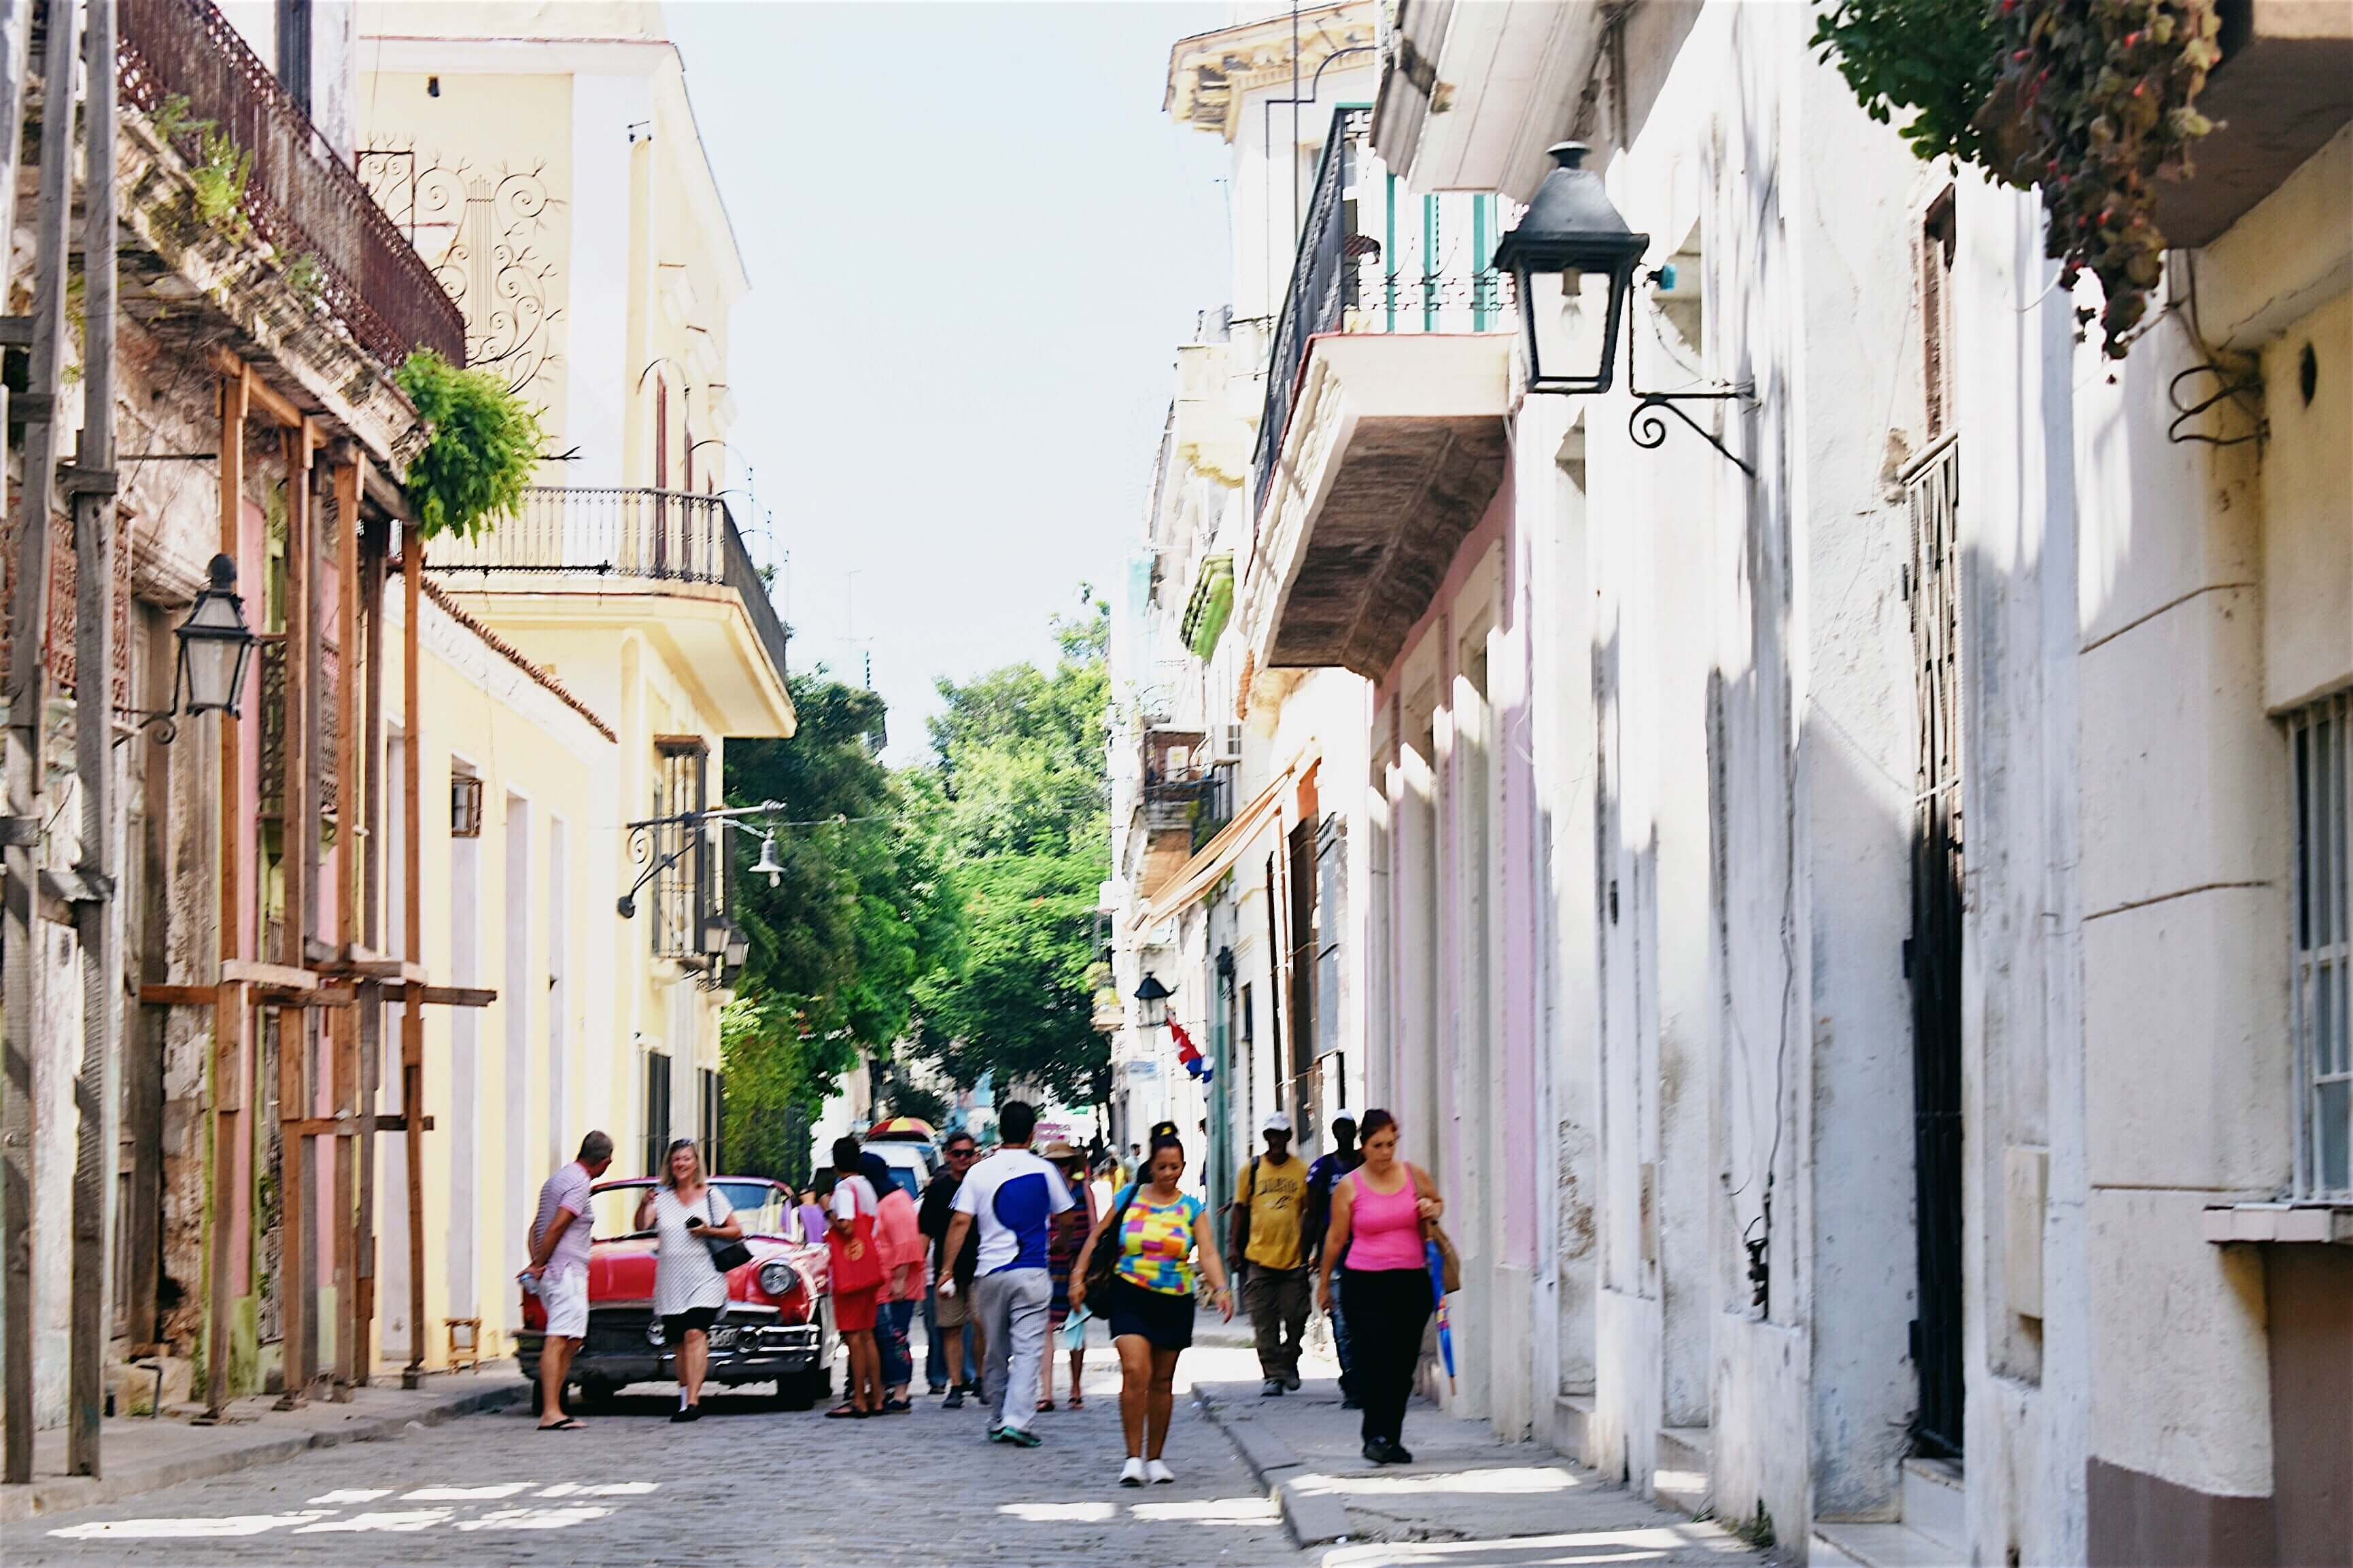 Pedestrians walking through the colorful streets of Havana Vieja